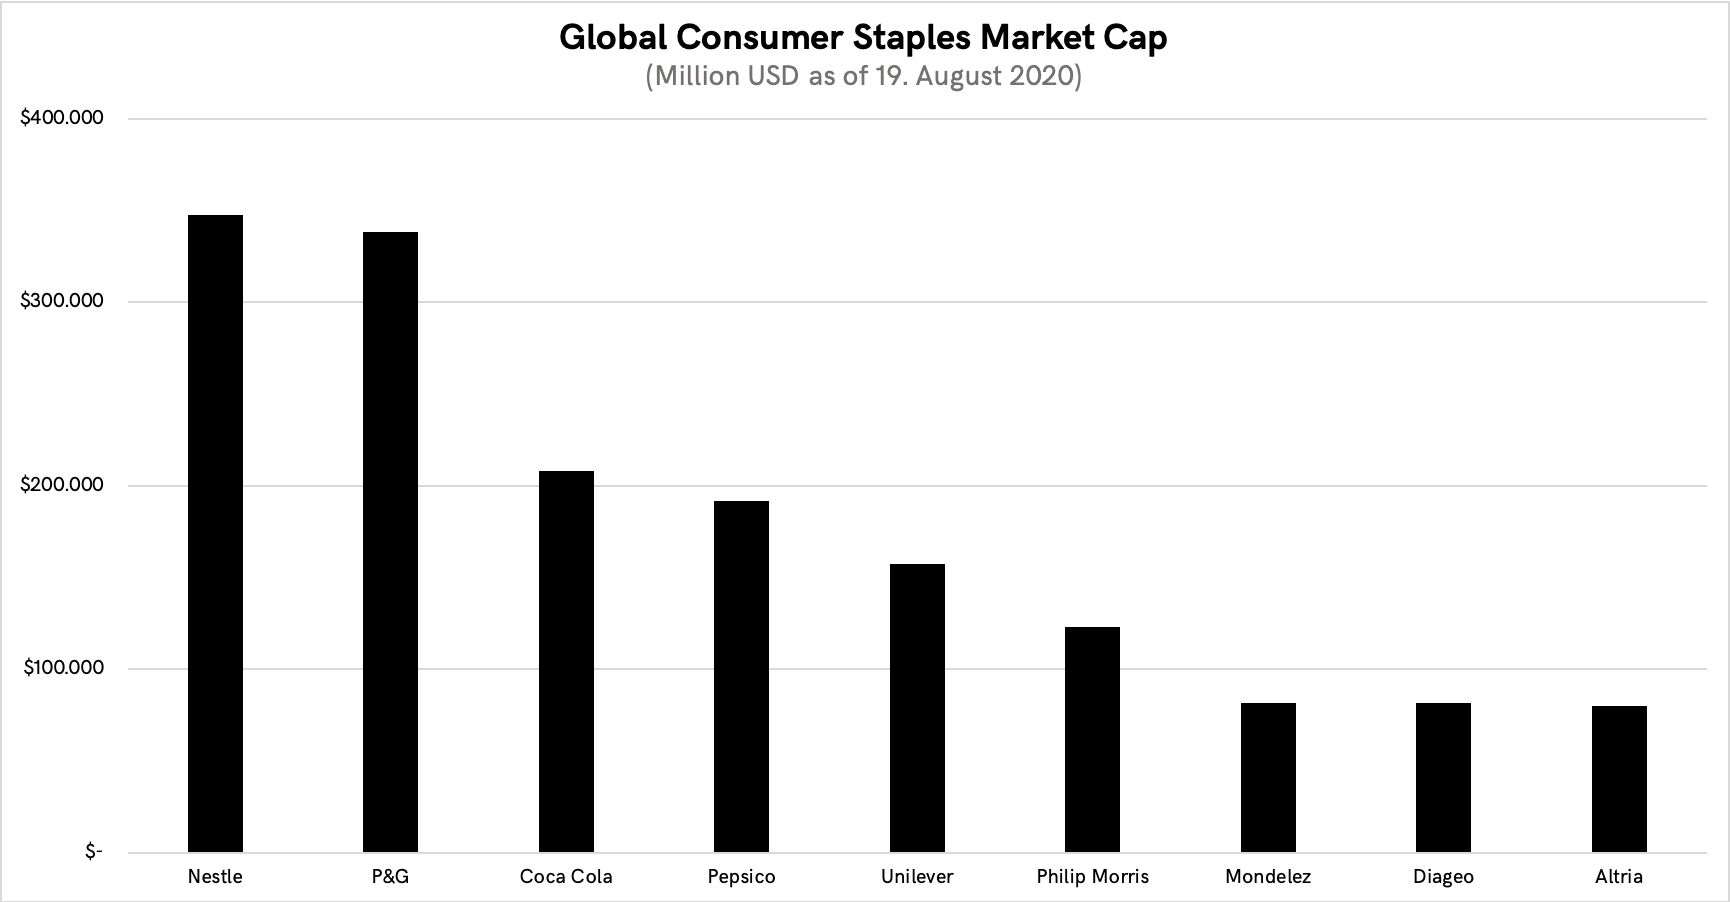 Comparison of market capitalization of public companies in the global consumer staples space